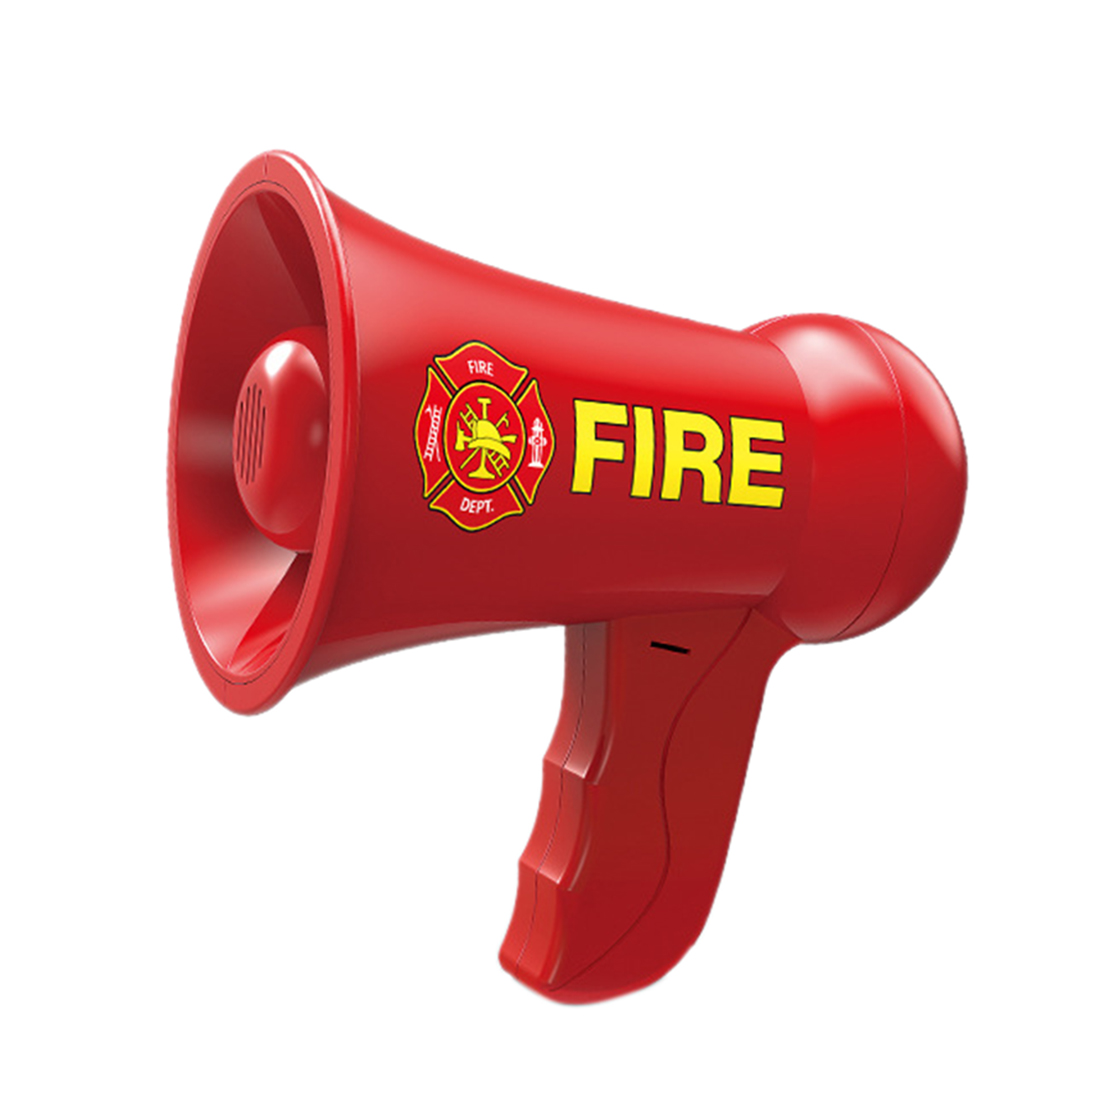 Hot Sale Pretend Play Firefighter Fireman Bullhorn Megaphone Pretend Police Officer Toy Sound For Kids Children Role Play Toy